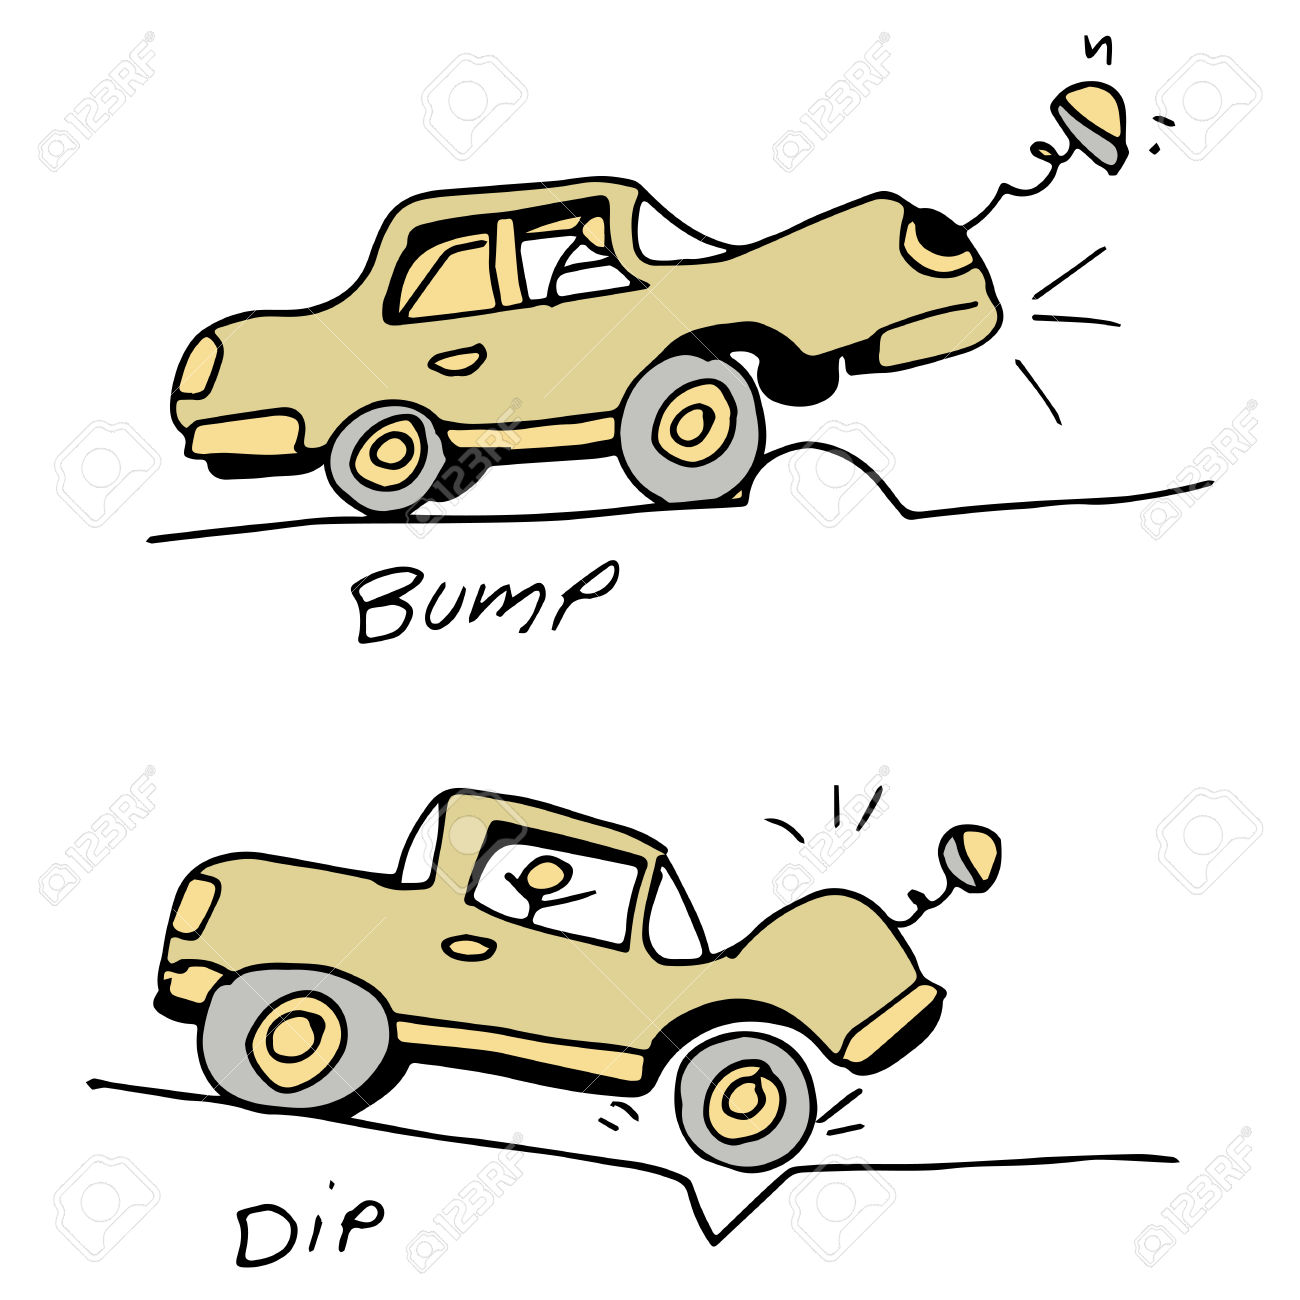 Bumps In The Road Clipart.